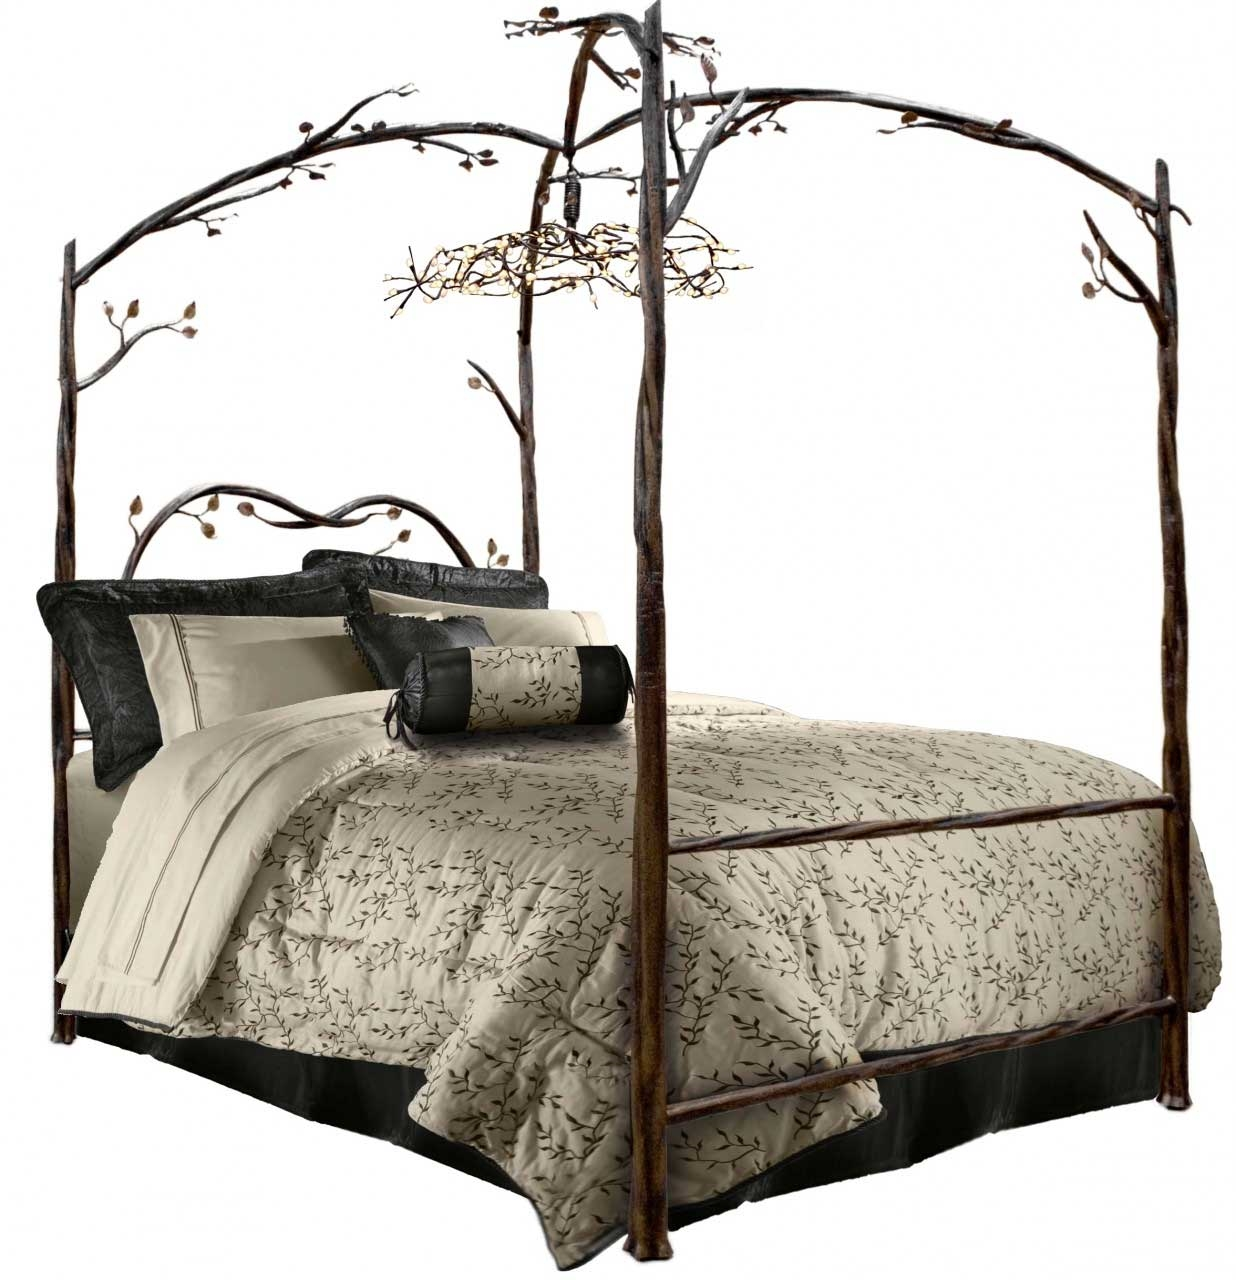 pictured here is the enchanted forest canopy bed handforged by stone county ironworks